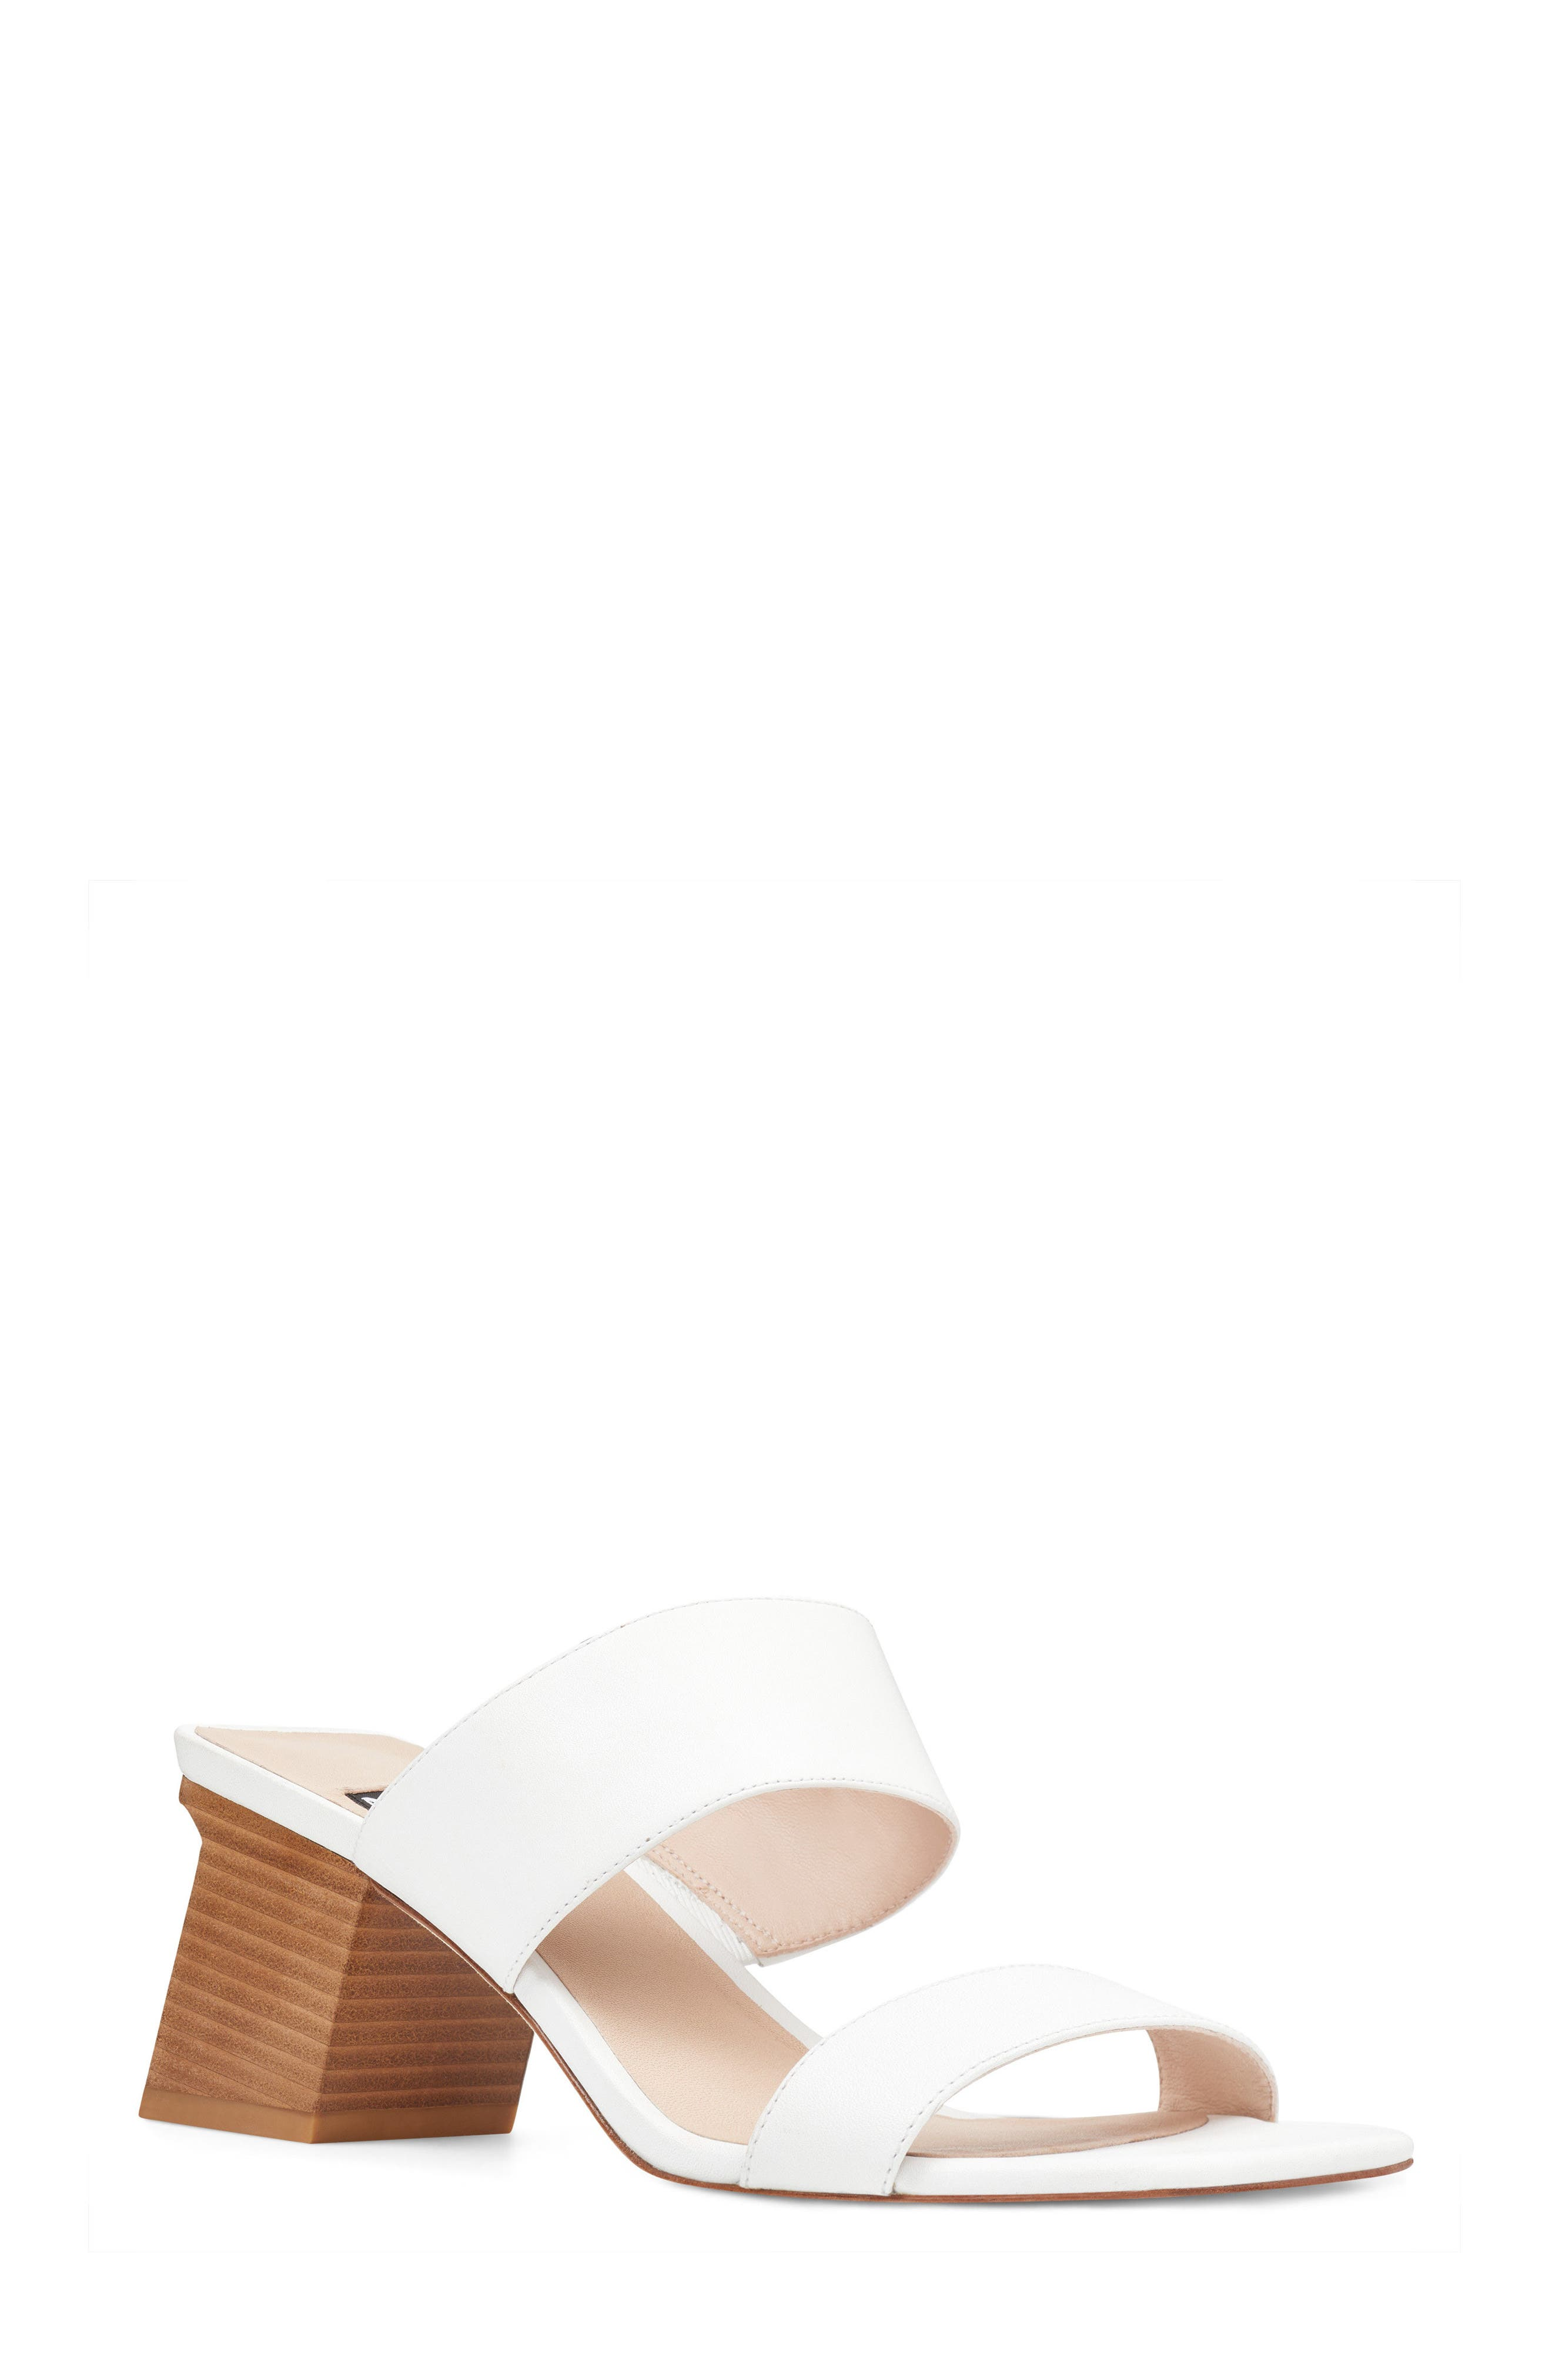 Churen - 40th Anniversary Capsule Collection Sandal,                             Main thumbnail 1, color,                             White Leather